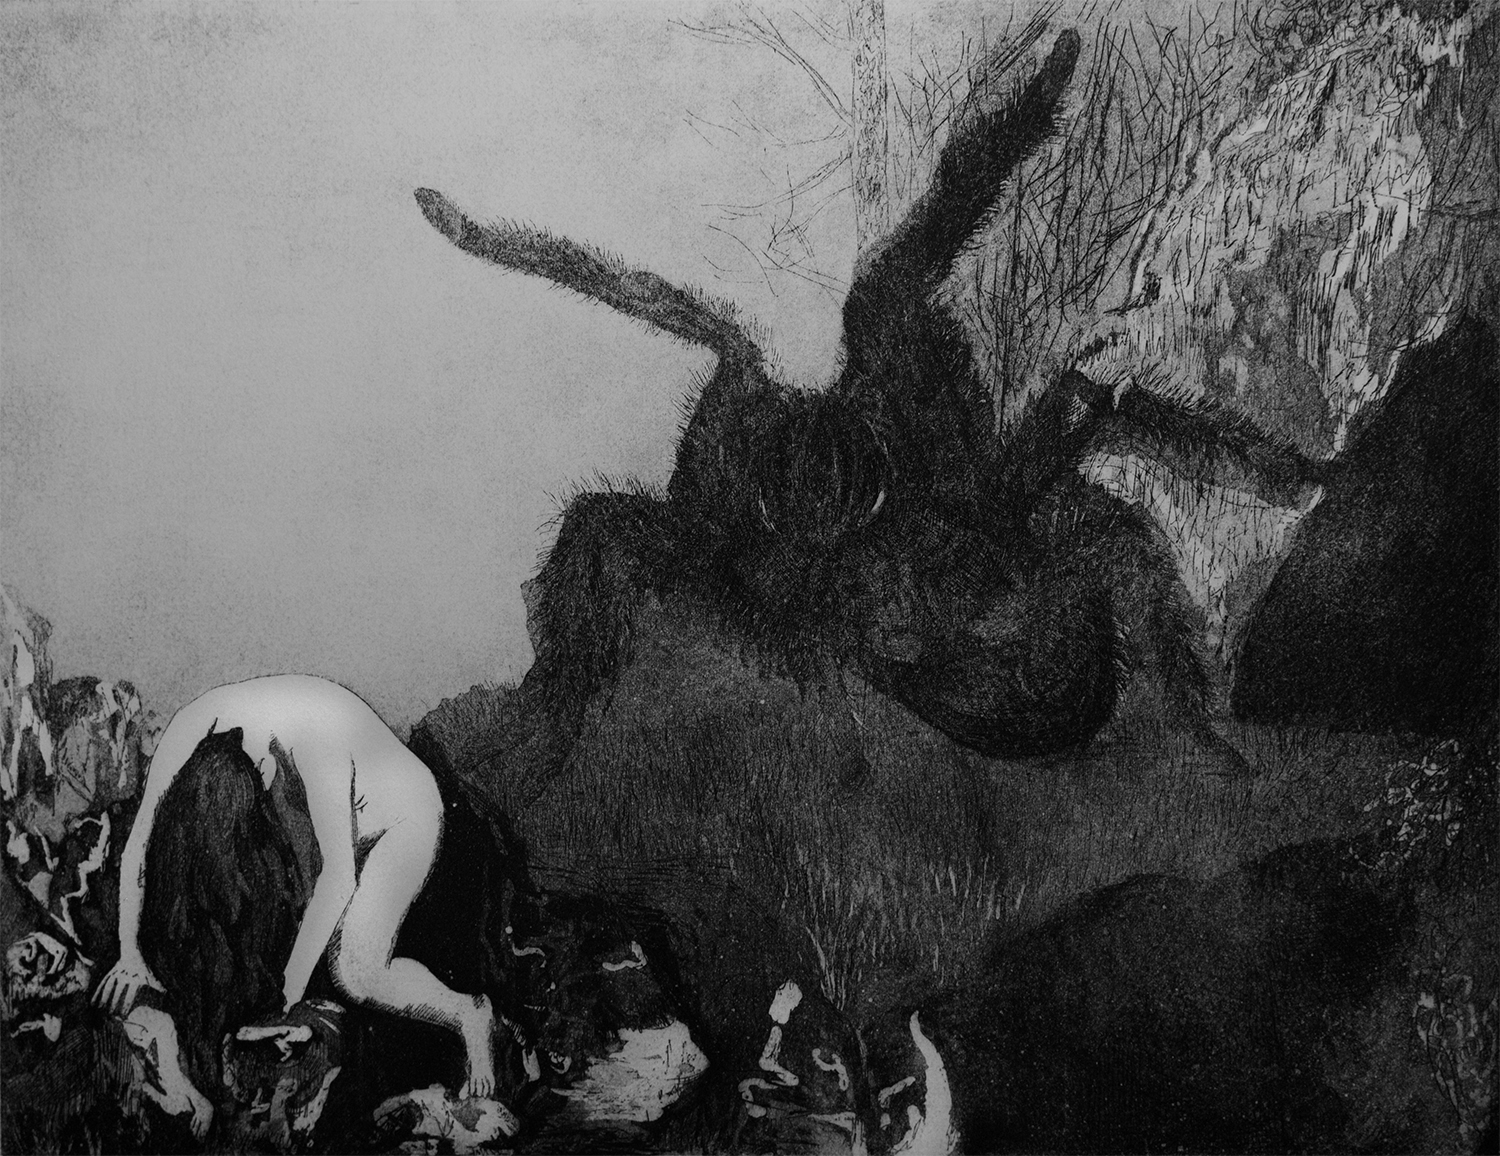 Incubus,  2015, etching and aqua tint on Rives BFK Heavyweight paper, 9x12''